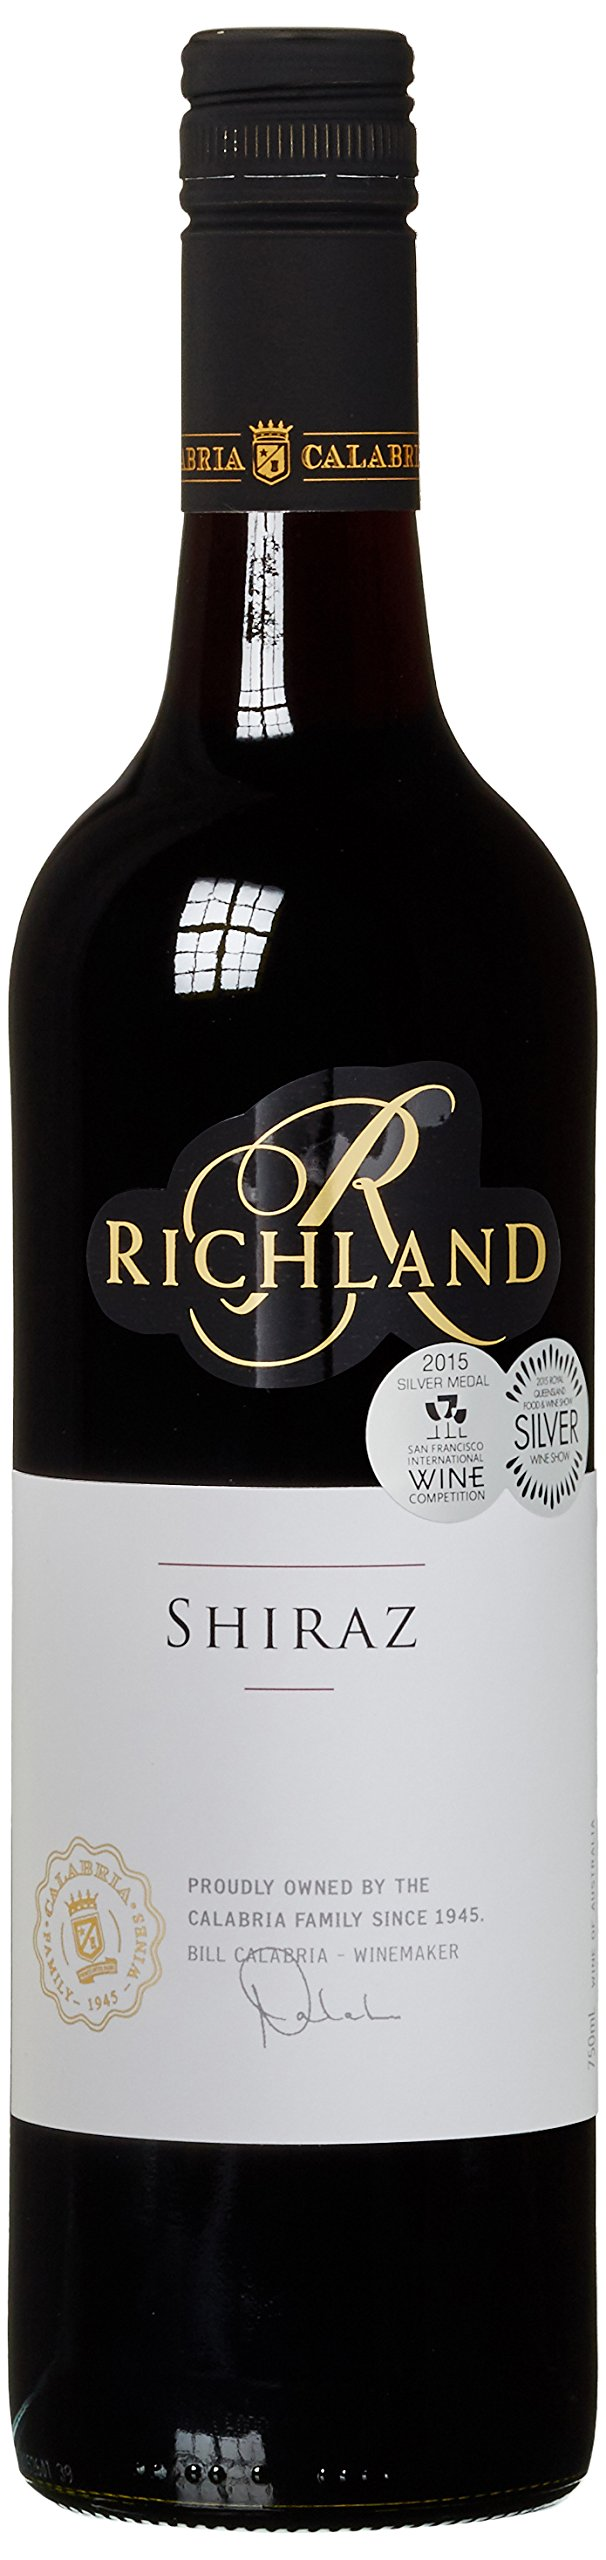 Calabria-Family-Wines-Richland-Shiraz-2016-1-x-075-l